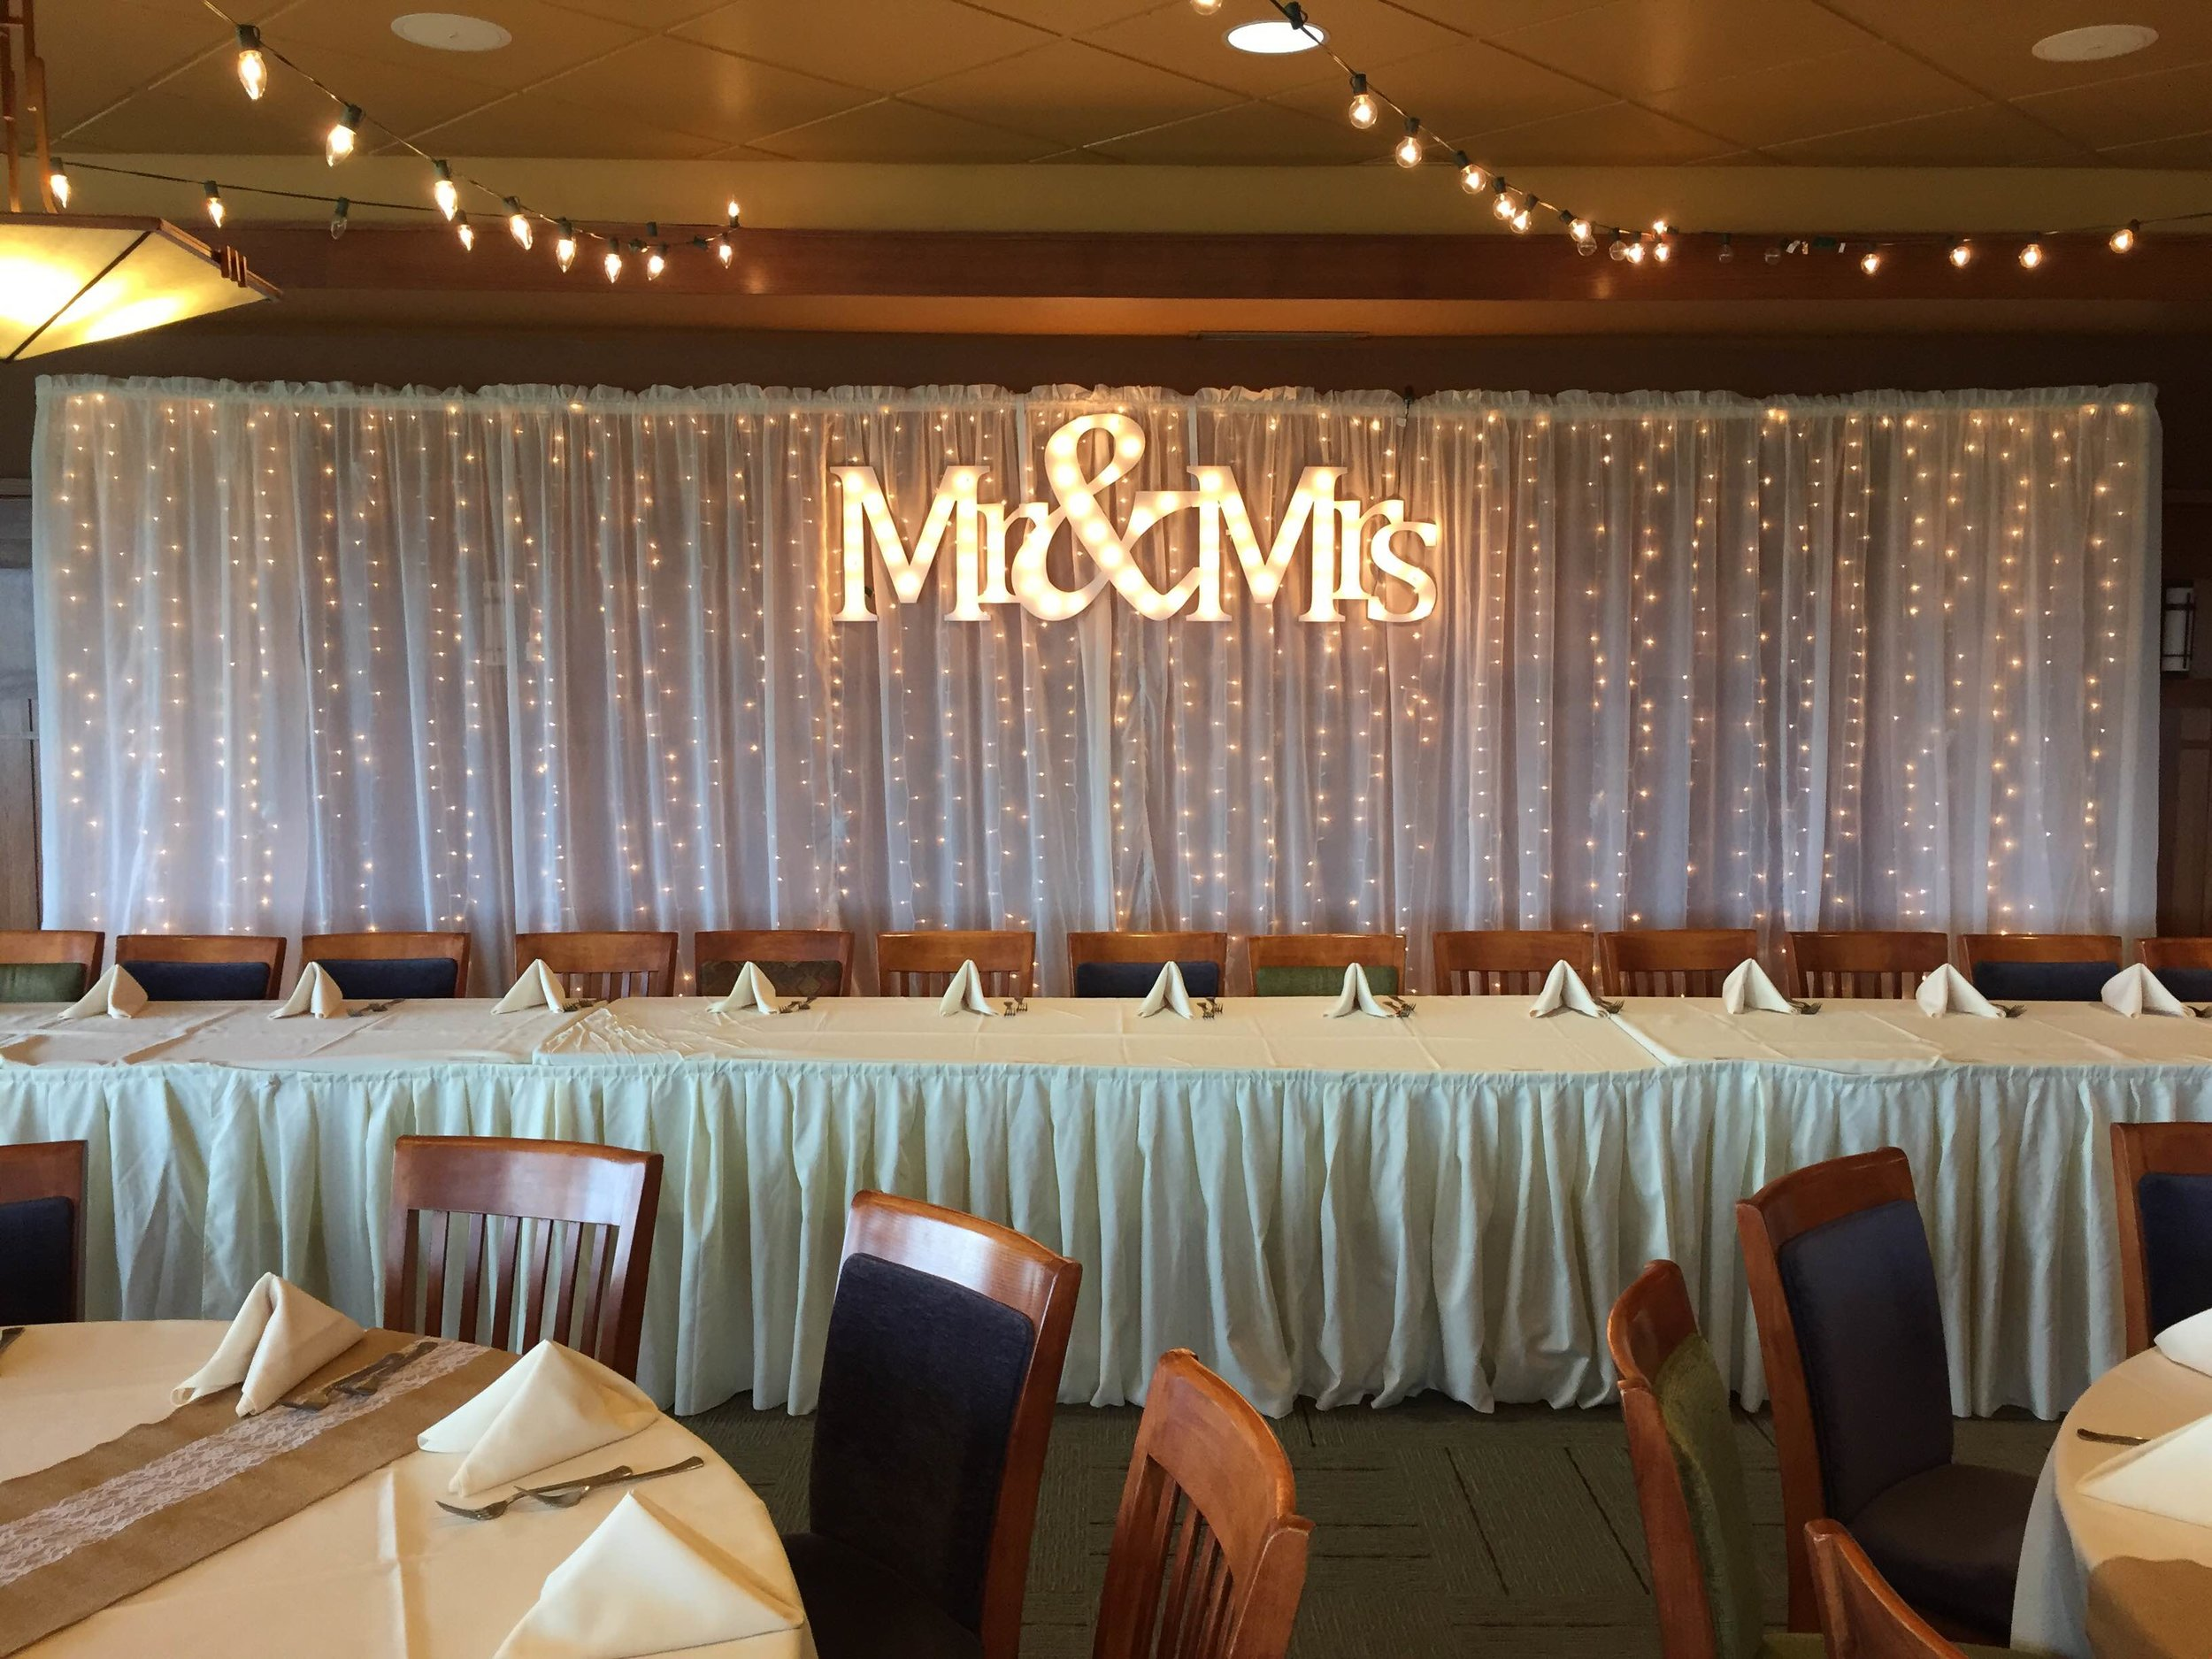 Mr. & Mrs. sign with lighted curtain